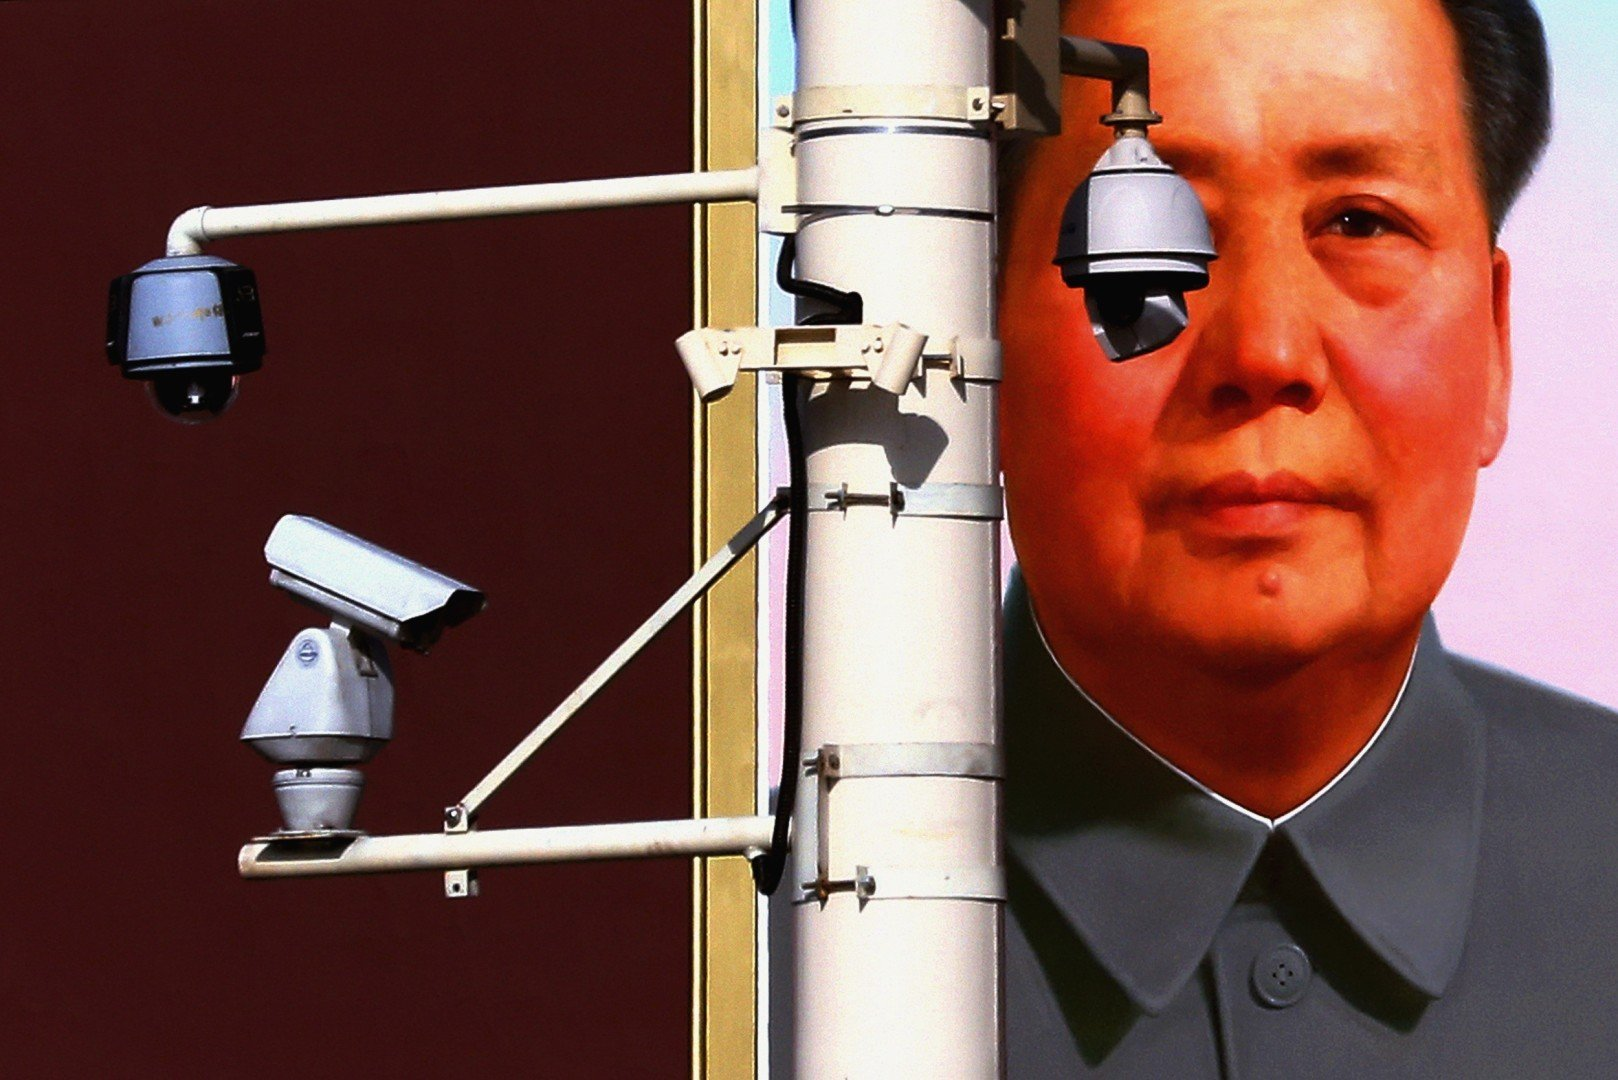 When Big Brother gets God's Eye: China tries to catch up on